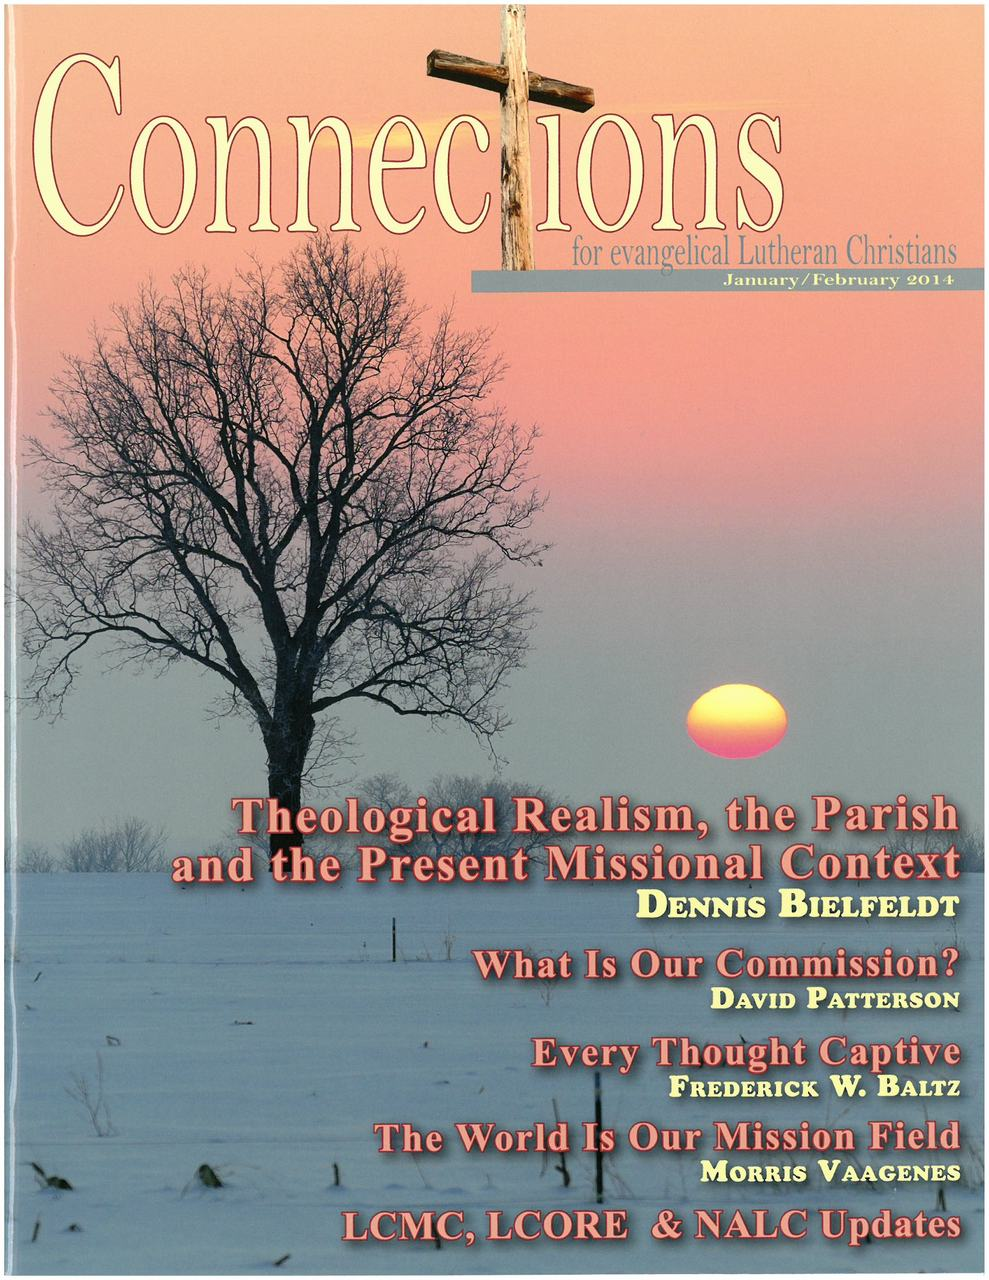 Connections Back Issue Jan/Feb '14 P-B141